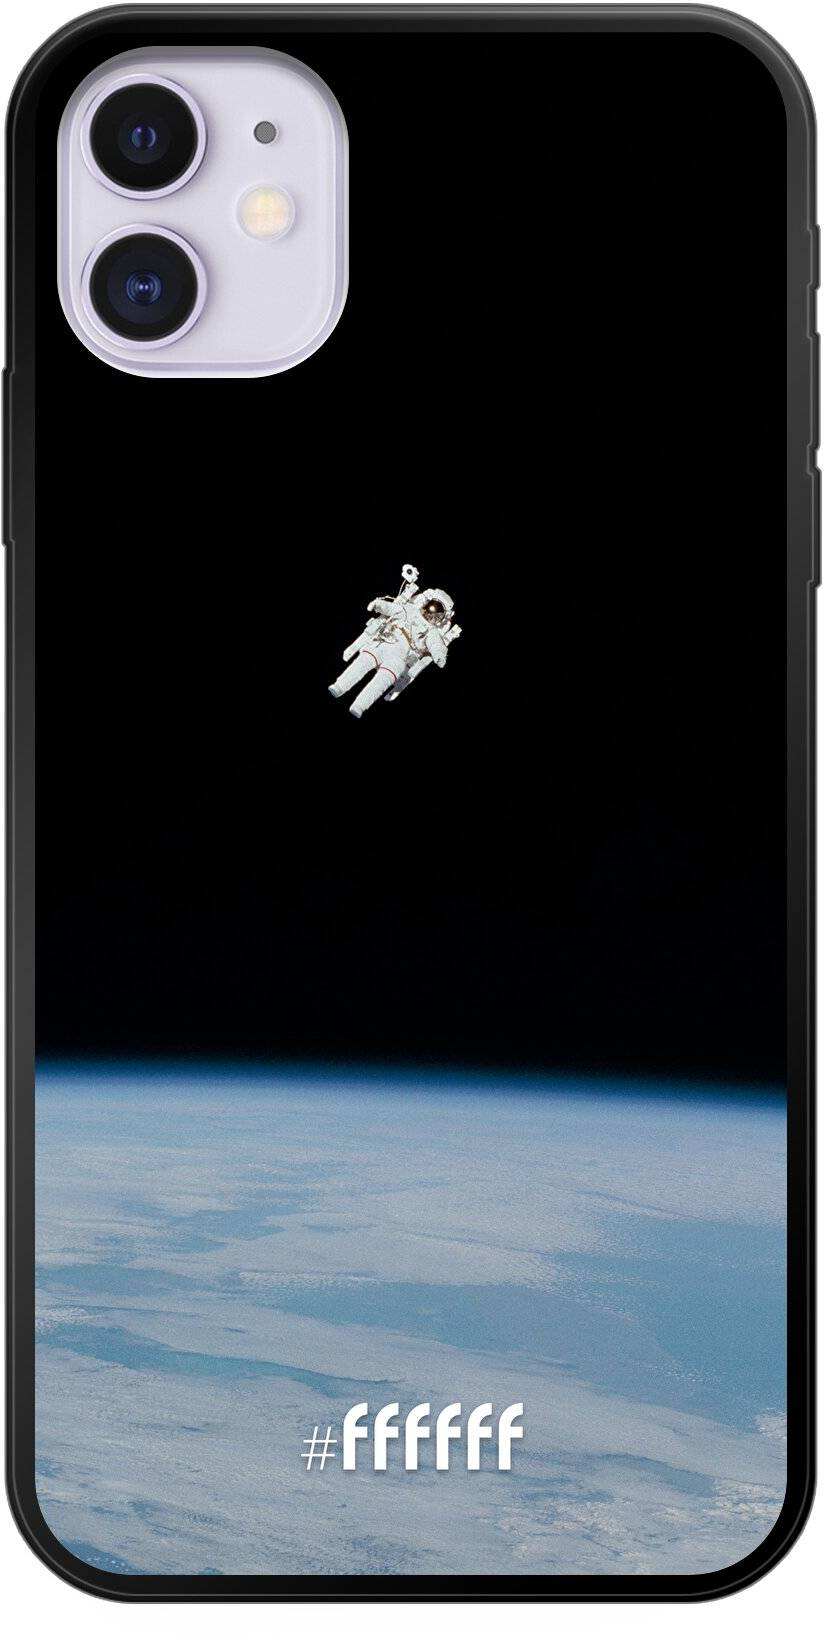 Spacewalk iPhone 11